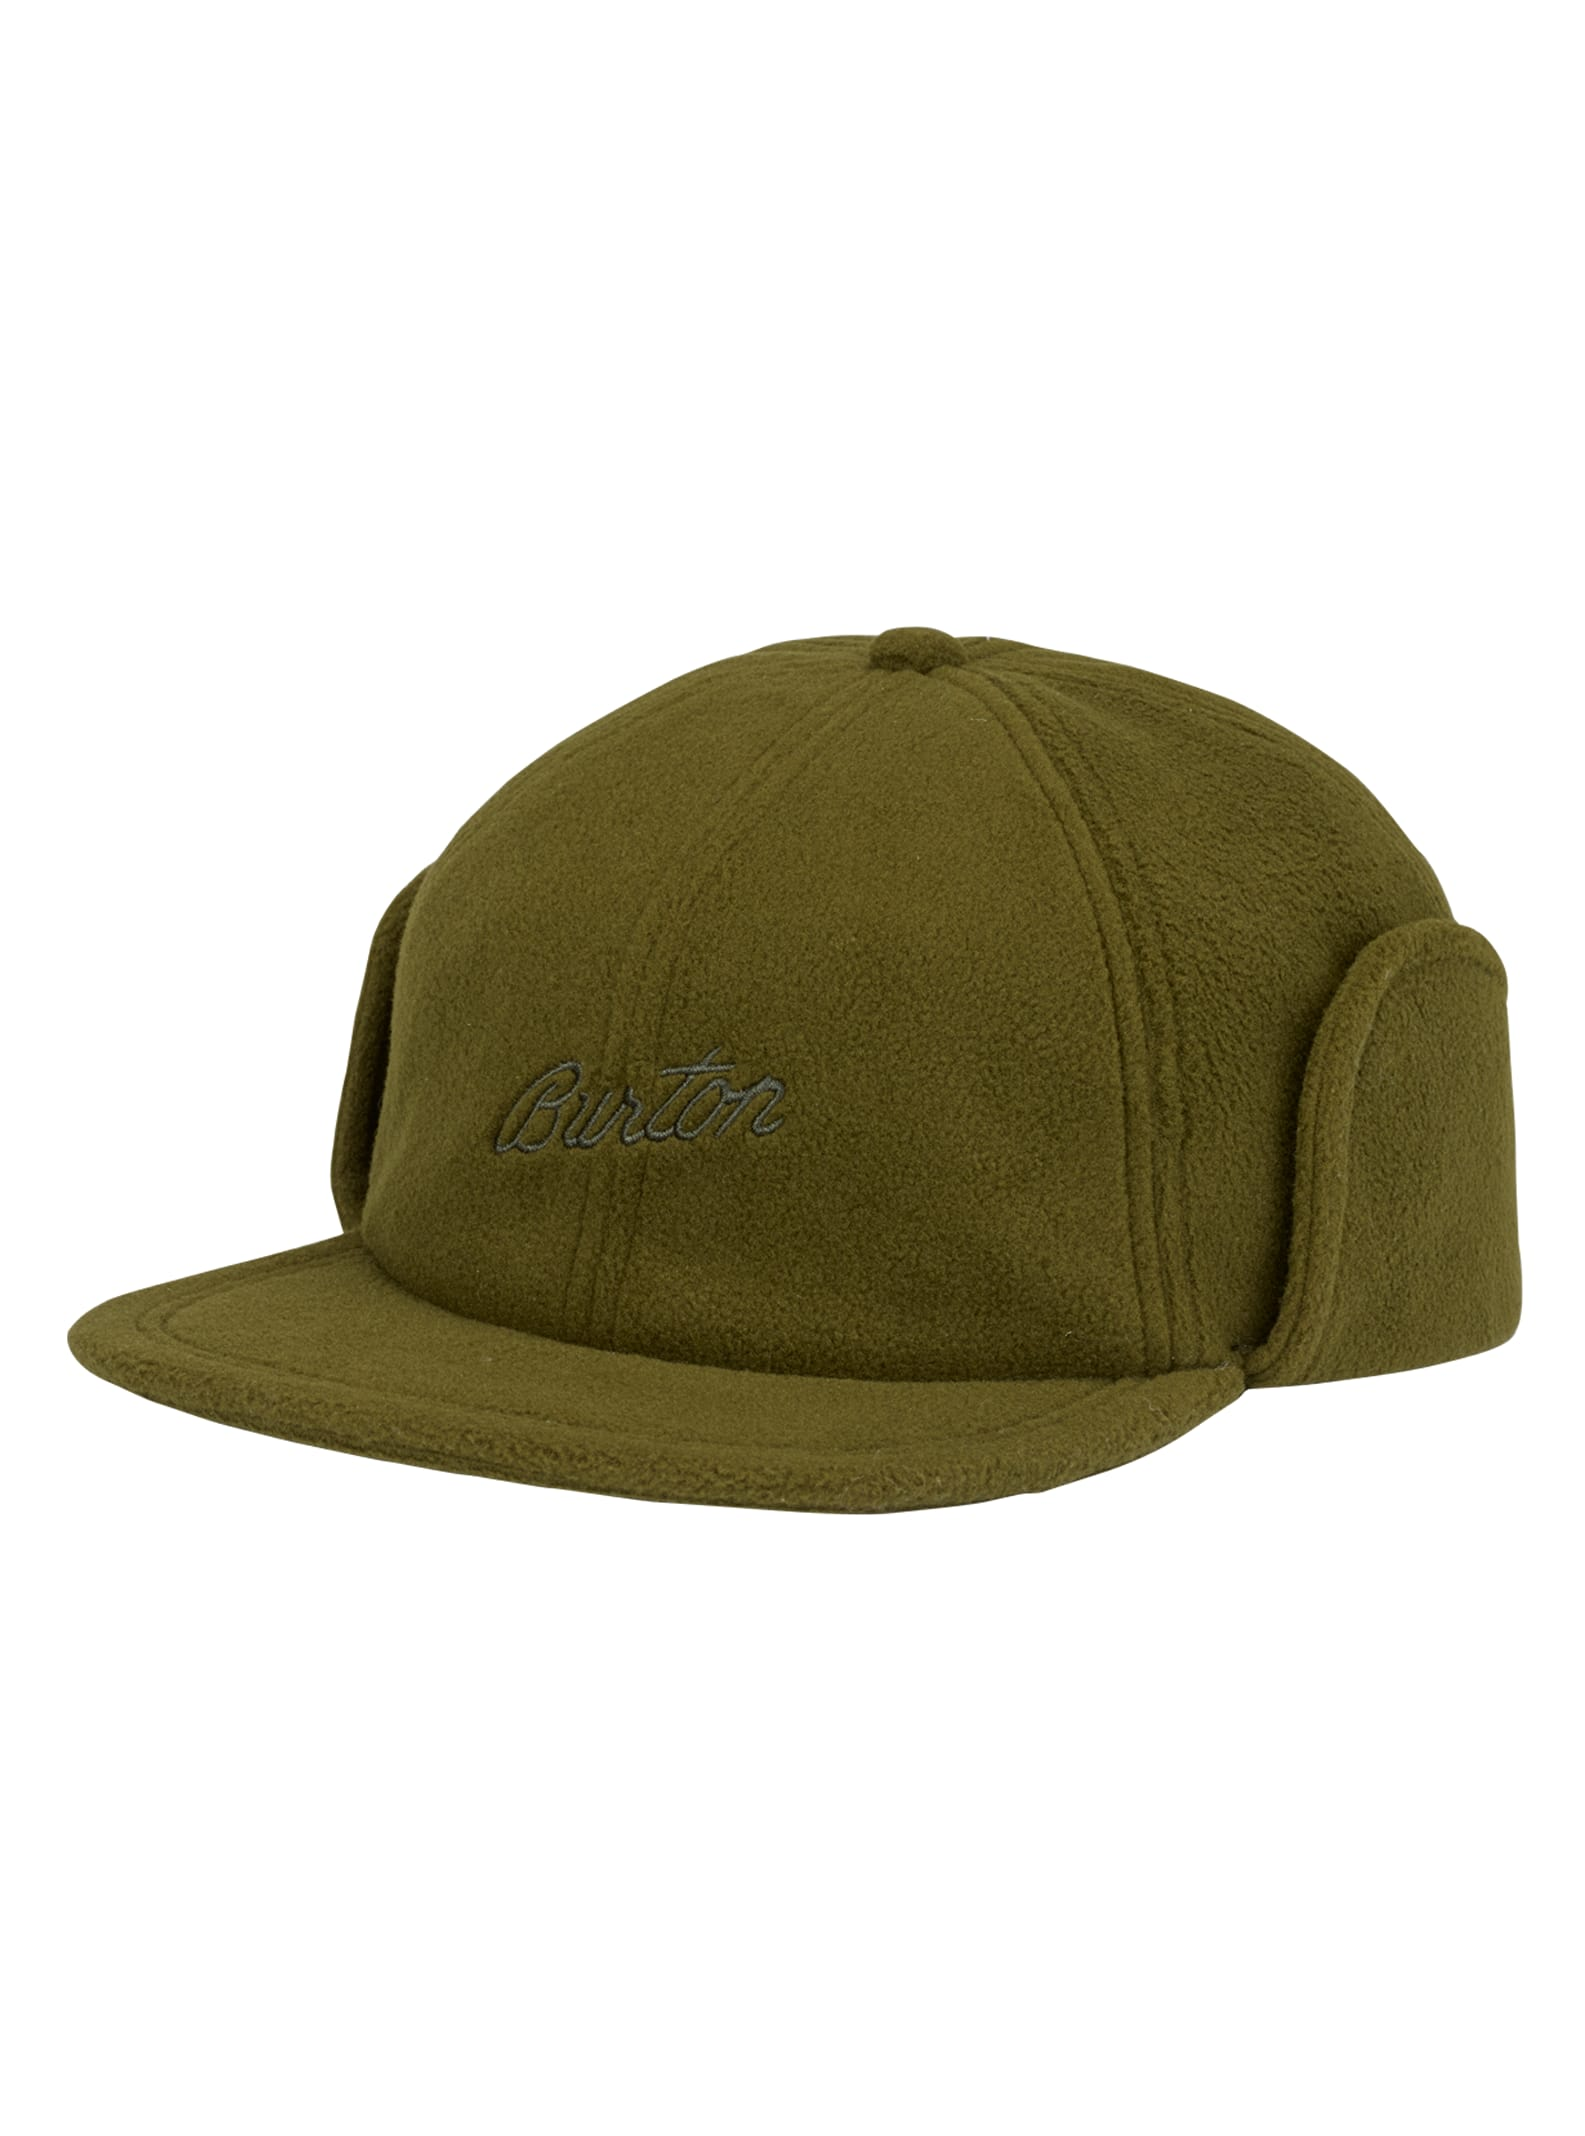 1afdddbf3 Burton Canyon Fleece Hat | Products | Hats, Burton hat, Burton ...